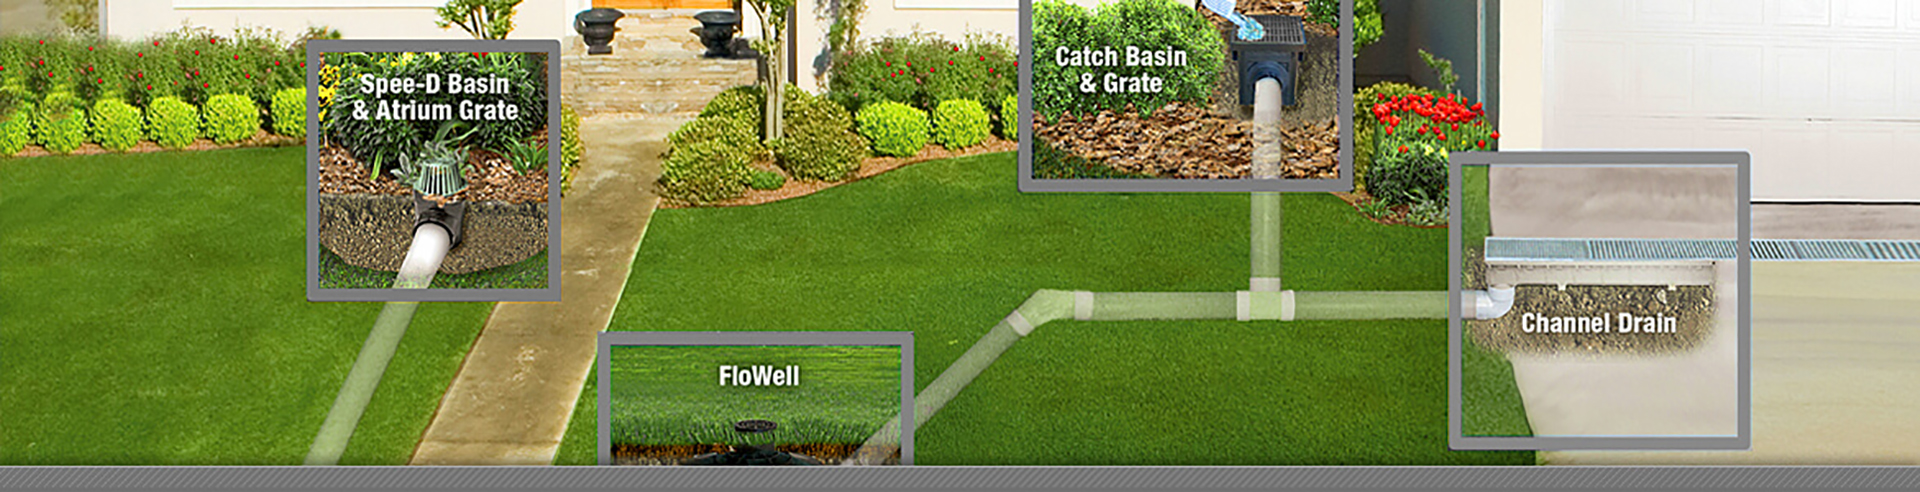 Drainage solutions for residential homes in ny nj and ct for Residential drainage solutions